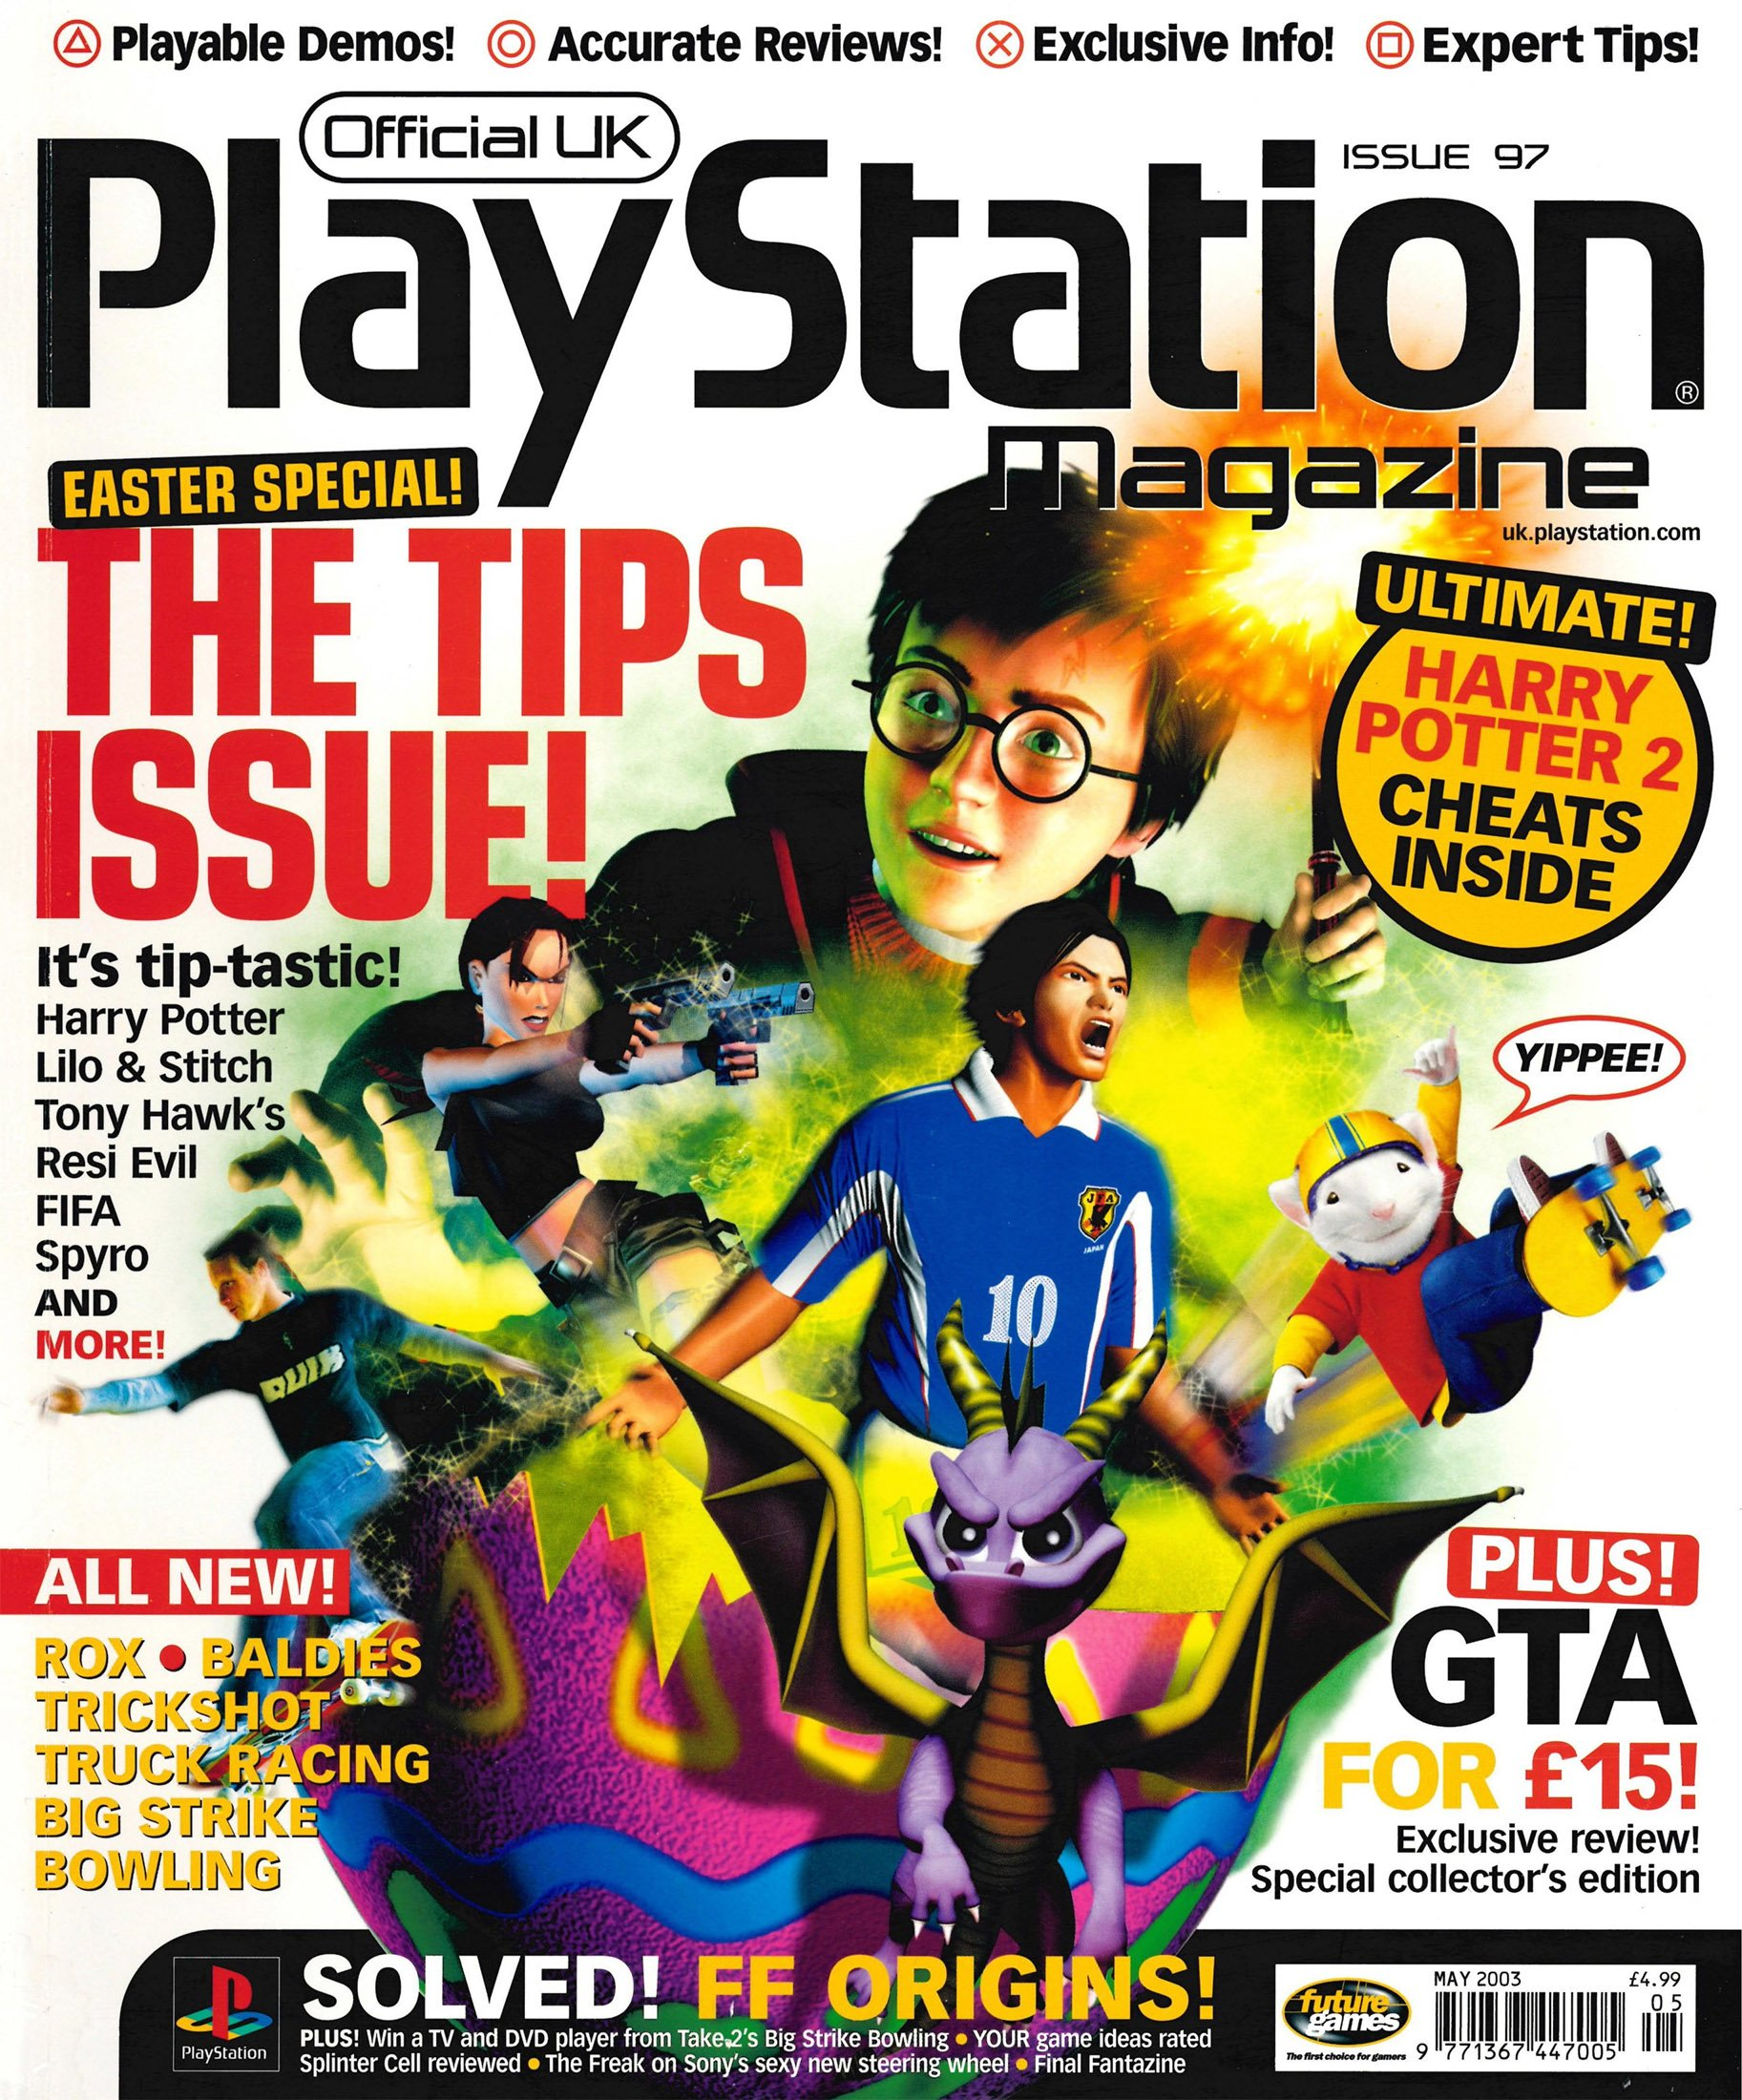 Official UK PlayStation Magazine Issue 097 (May 2003)